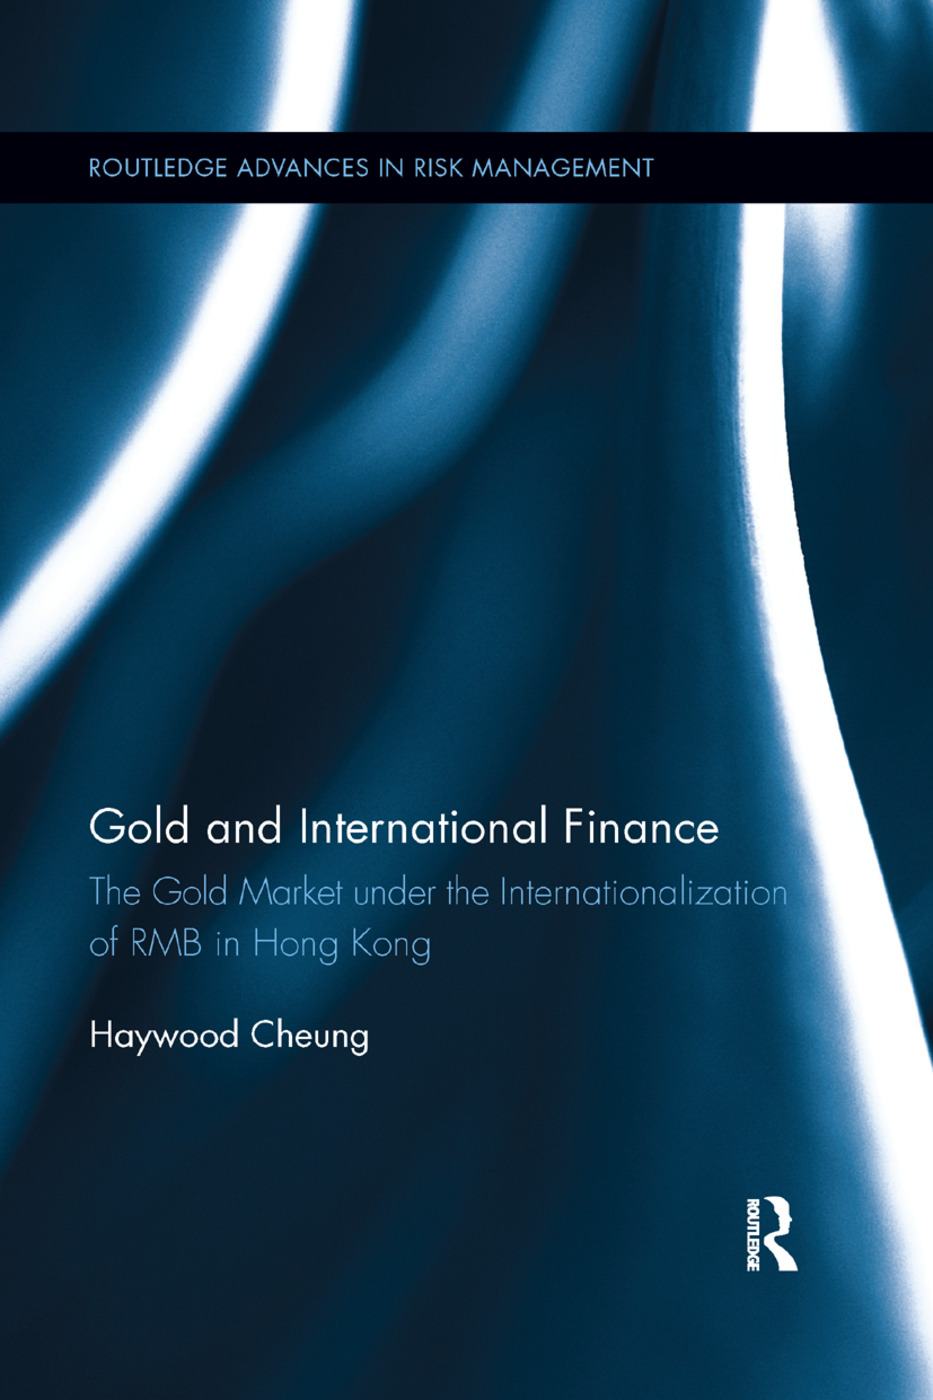 Gold and International Finance